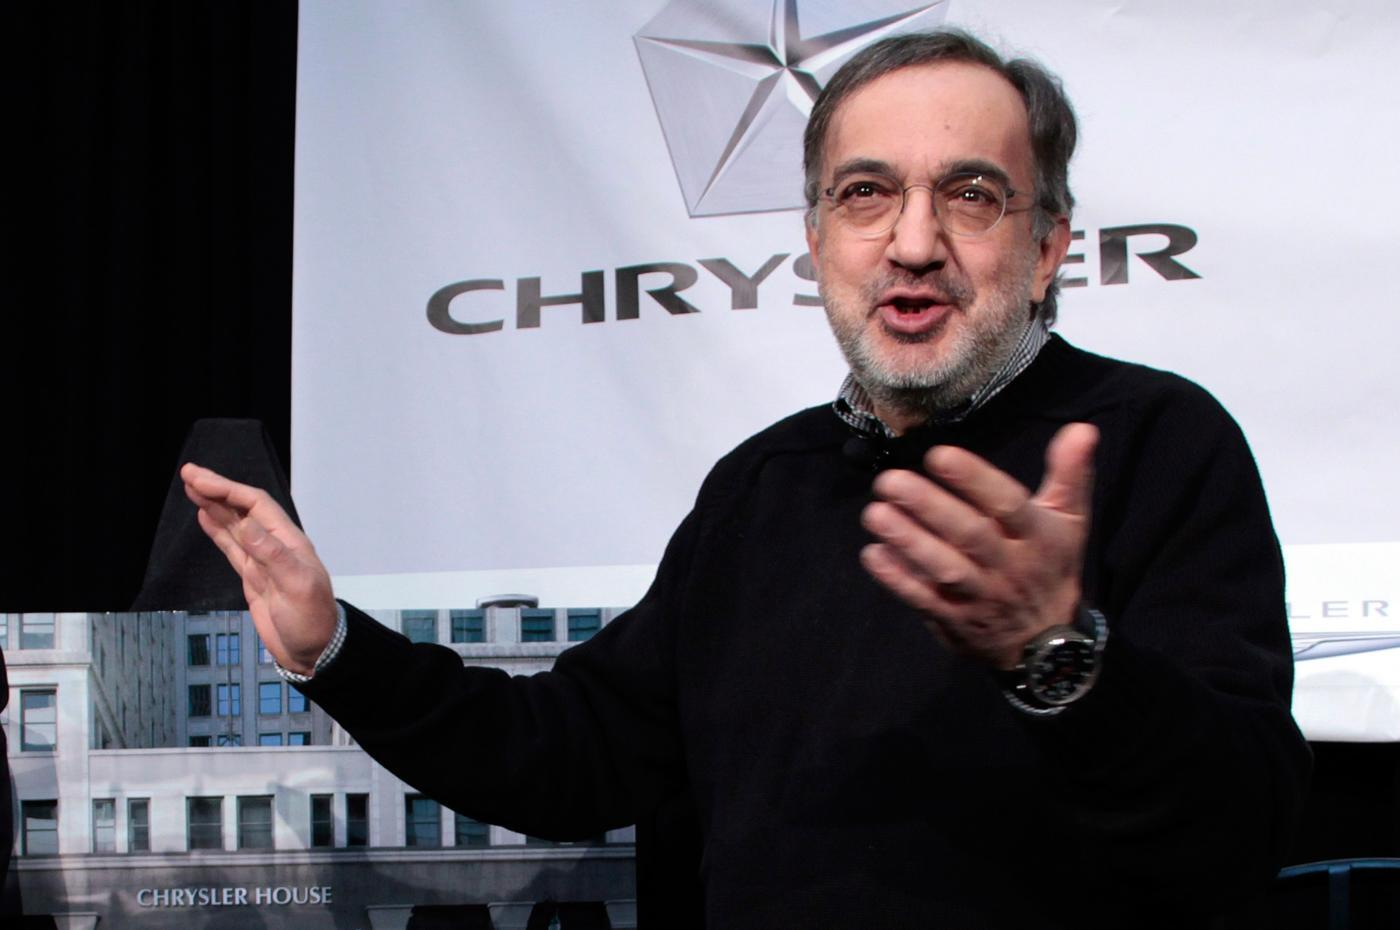 Fiat Chrysler Automobiles possibile successore Sergio Marchionne